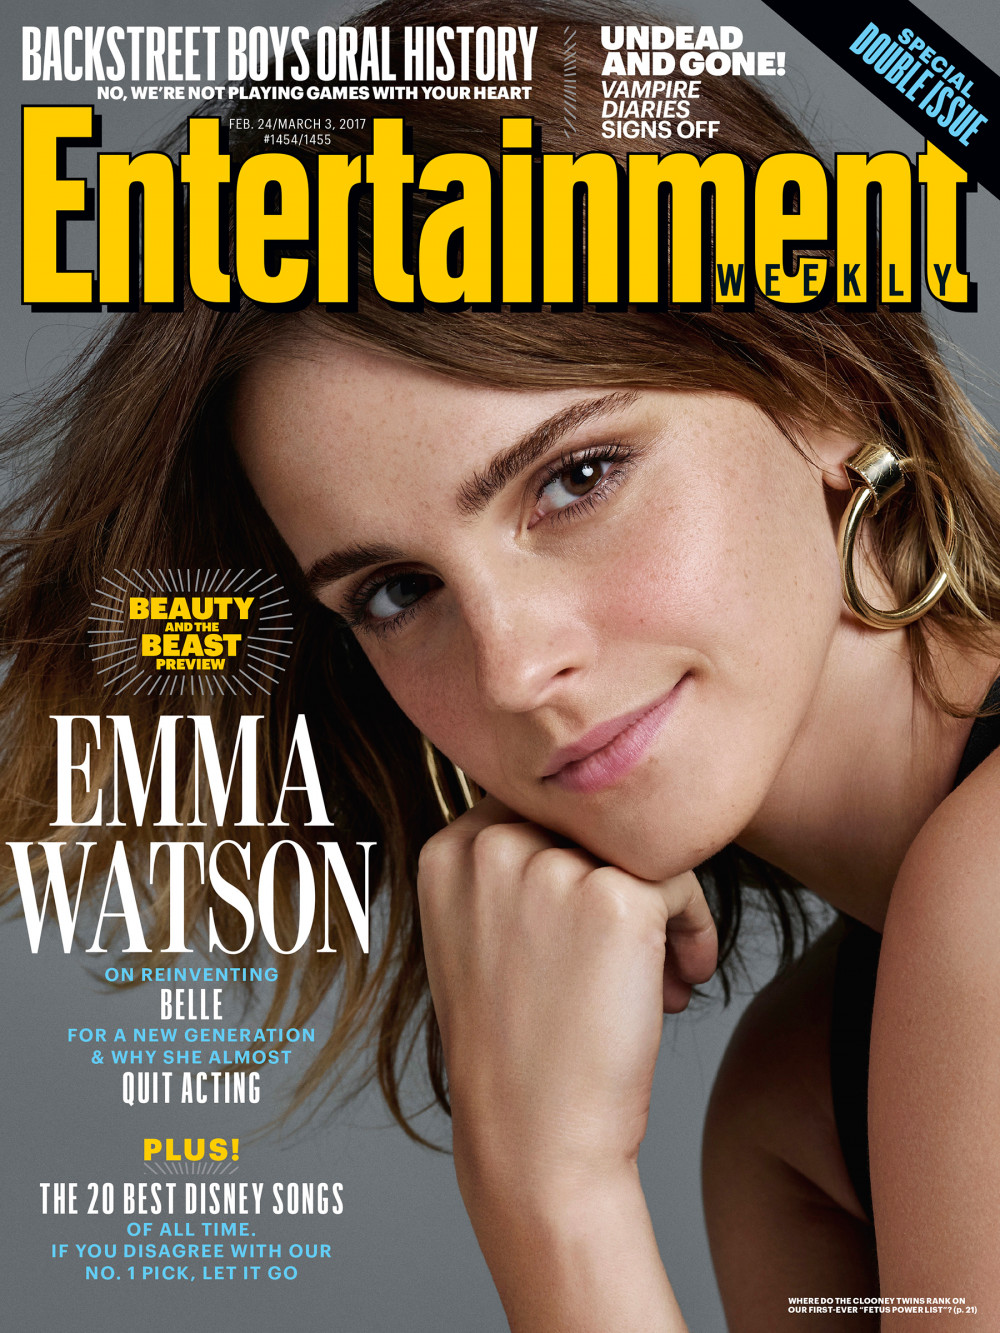 beauty and the beast star emma watson covers